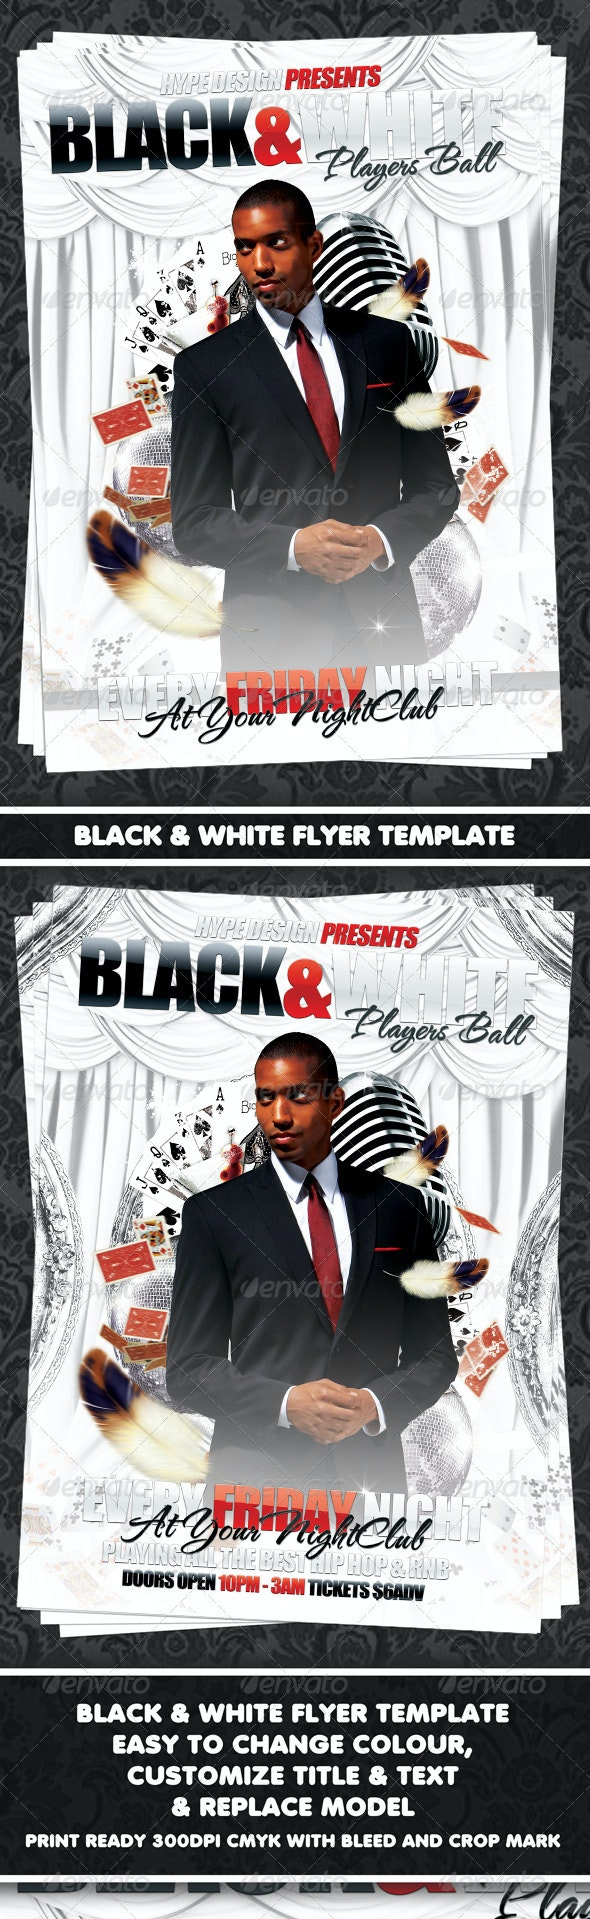 Black & White Players Ball Flyer Template - Clubs & Parties Events